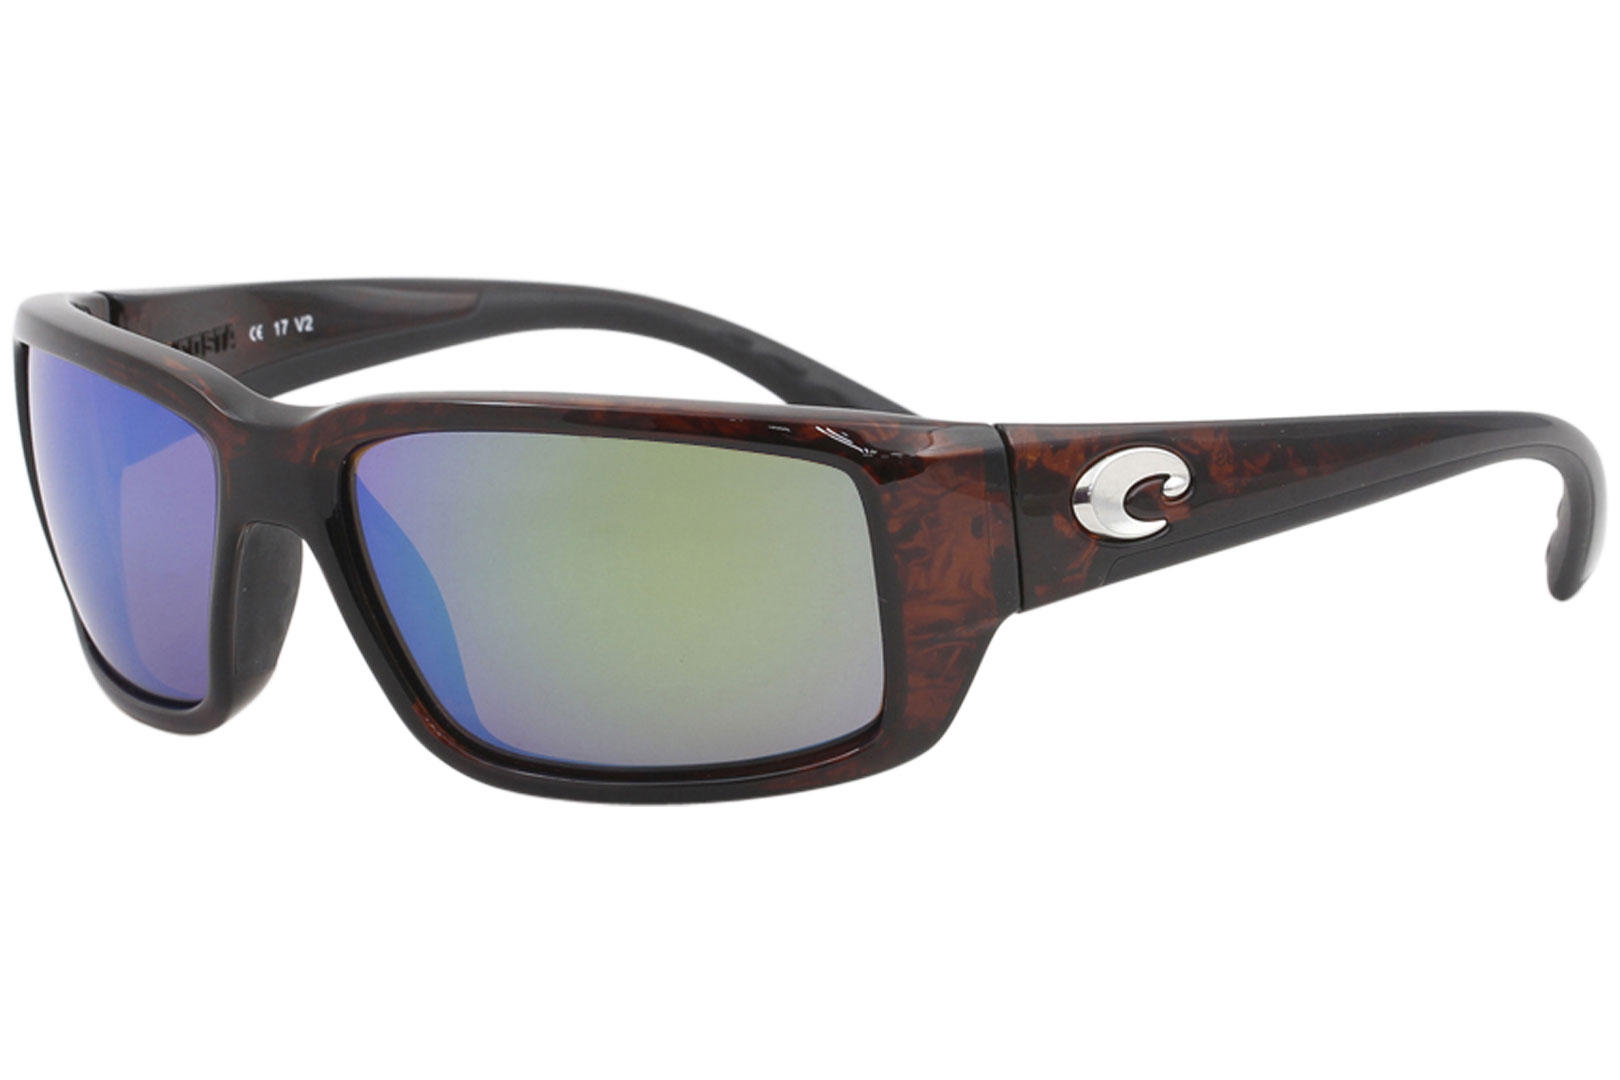 9011d1304f Costa Del Mar Fantail TF10 TF 10 Tortoise Rectangle Polarized ...